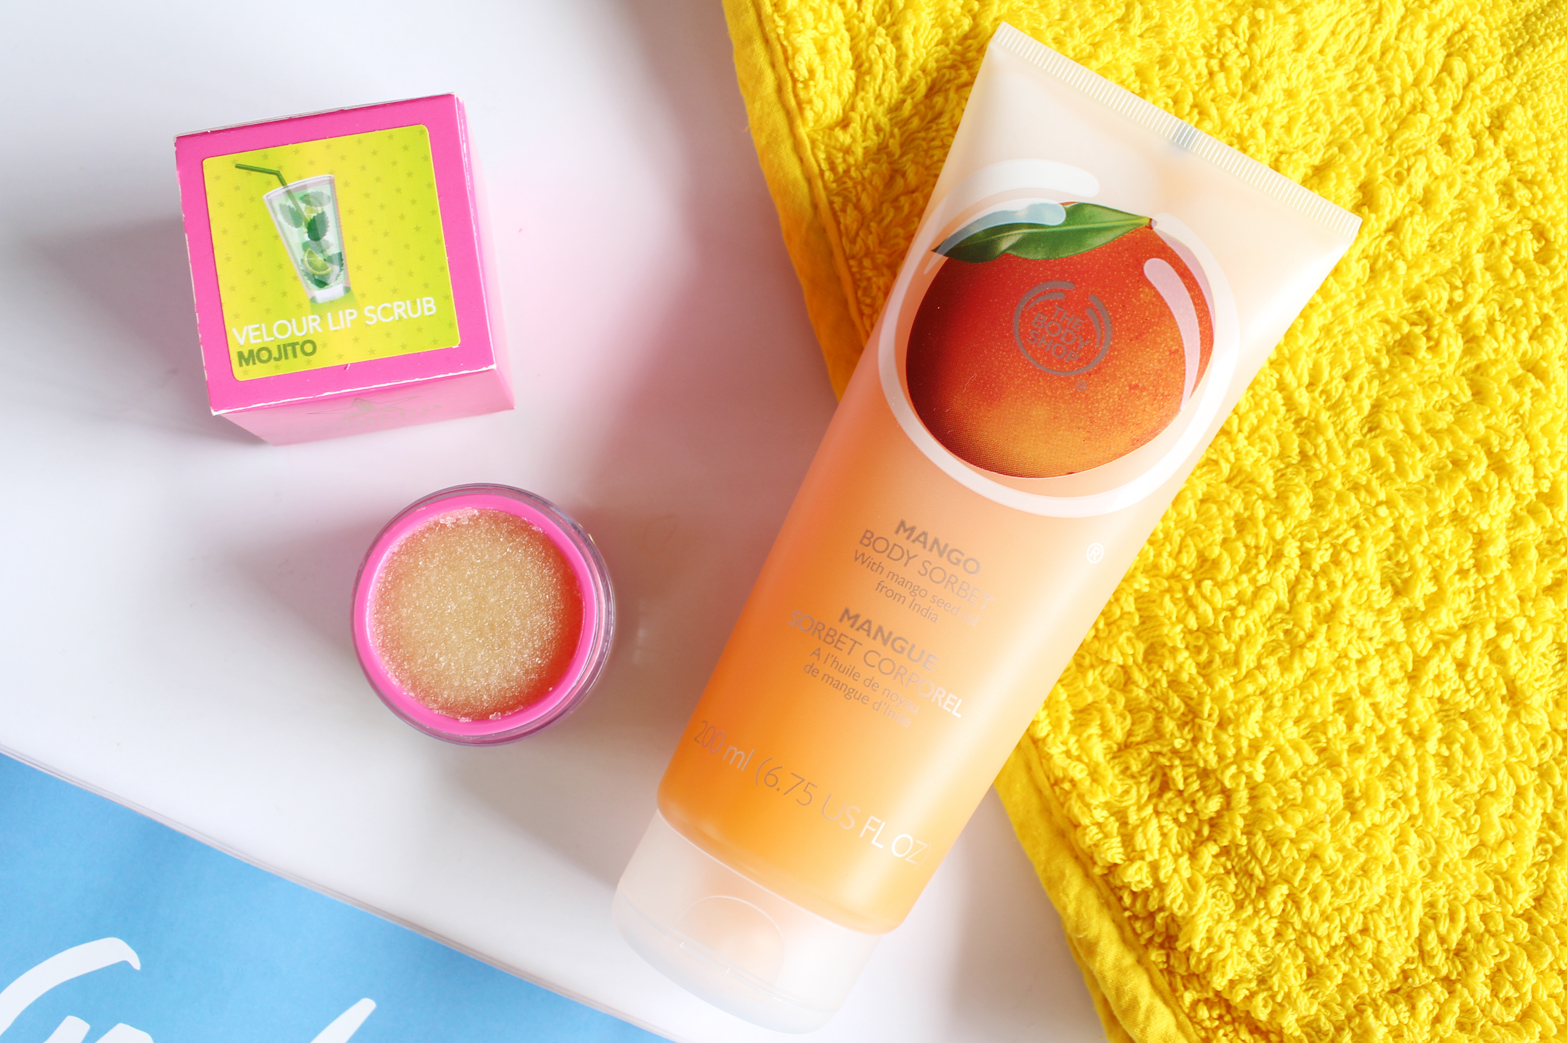 SUMMER BODY ESSENTIALS - The Body Shop Body Sorbet, The Body Shop Seaweed Mattifying Lotion, Garnier Ambre Solaire Sensitive Advance Sunscreen + Jeffree Star Velour Lip Scrub - CassandraMyee